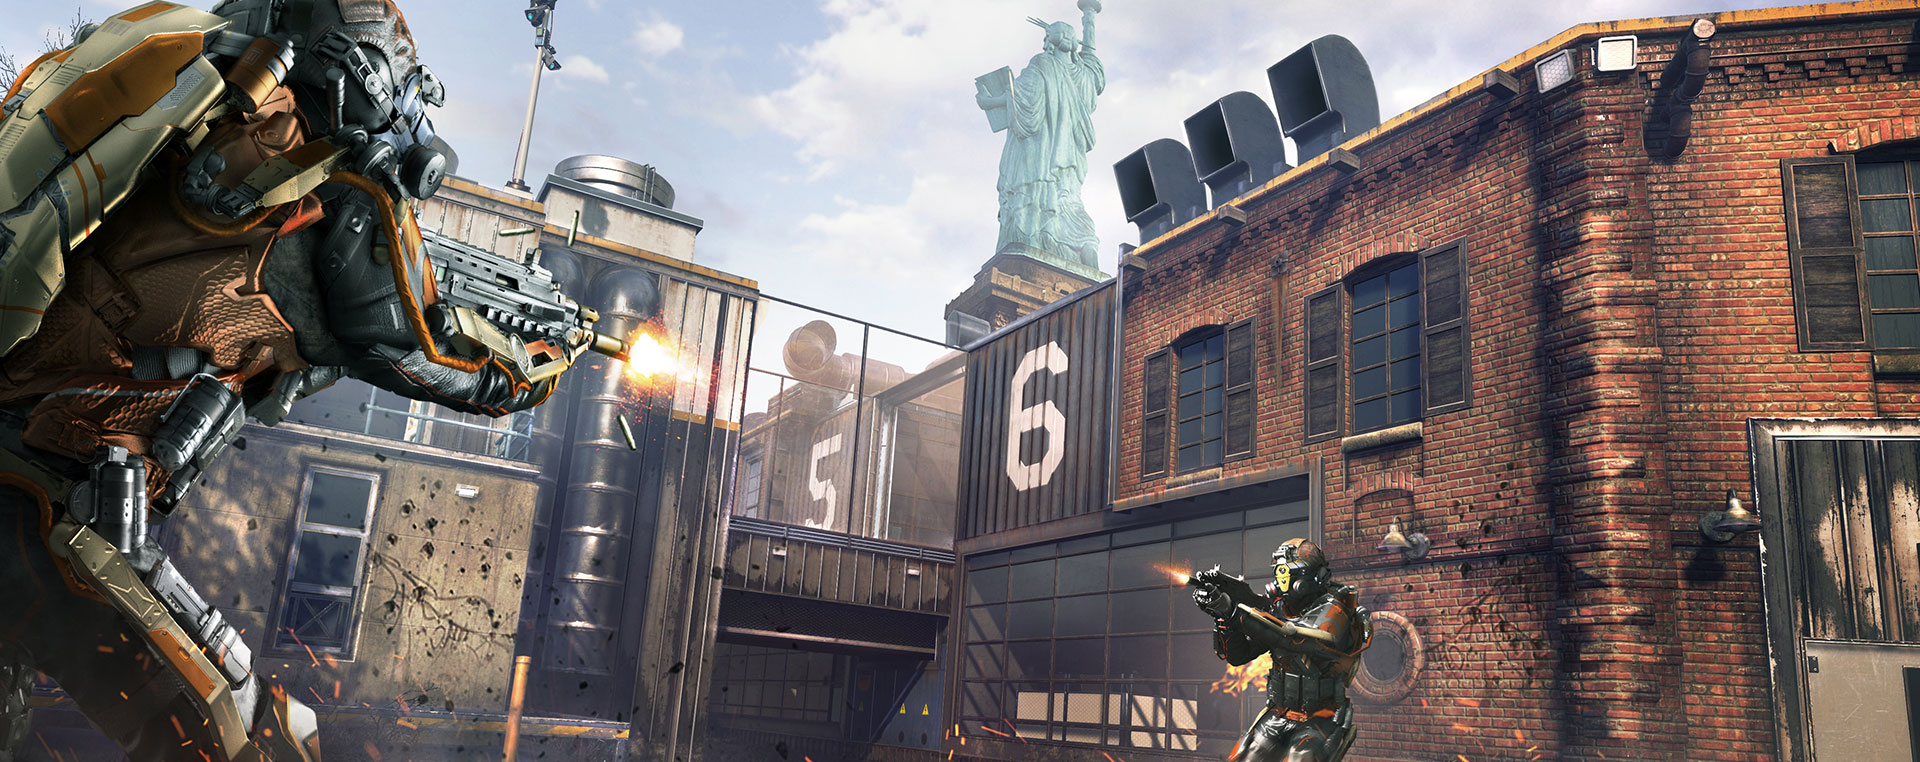 Call Of Duty Advanced Warfare S Reckoning Dlc Pack Launches August 4 On Xbox